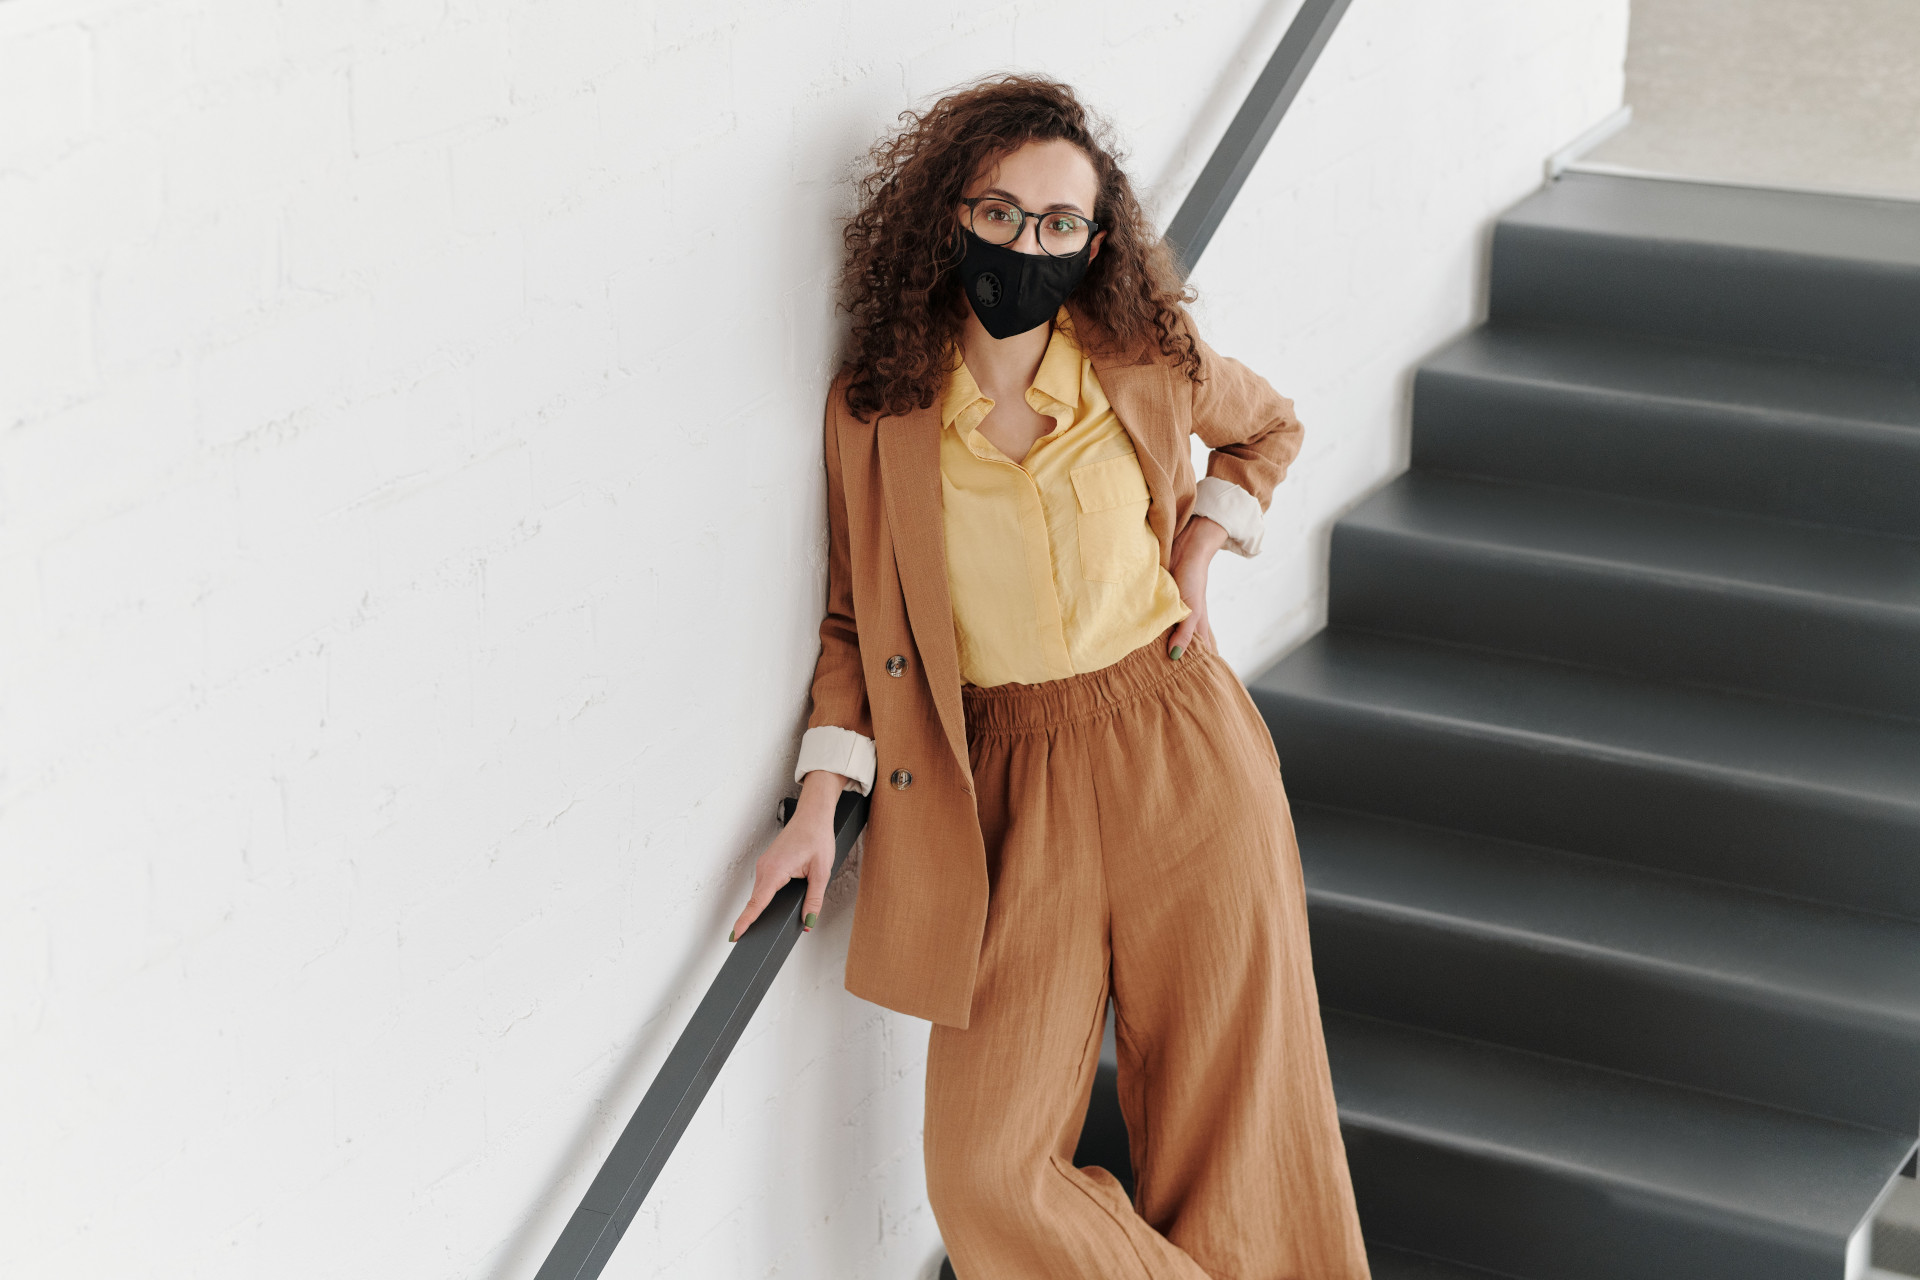 woman-with-a-face-mask-standing-on-stairs-4347460